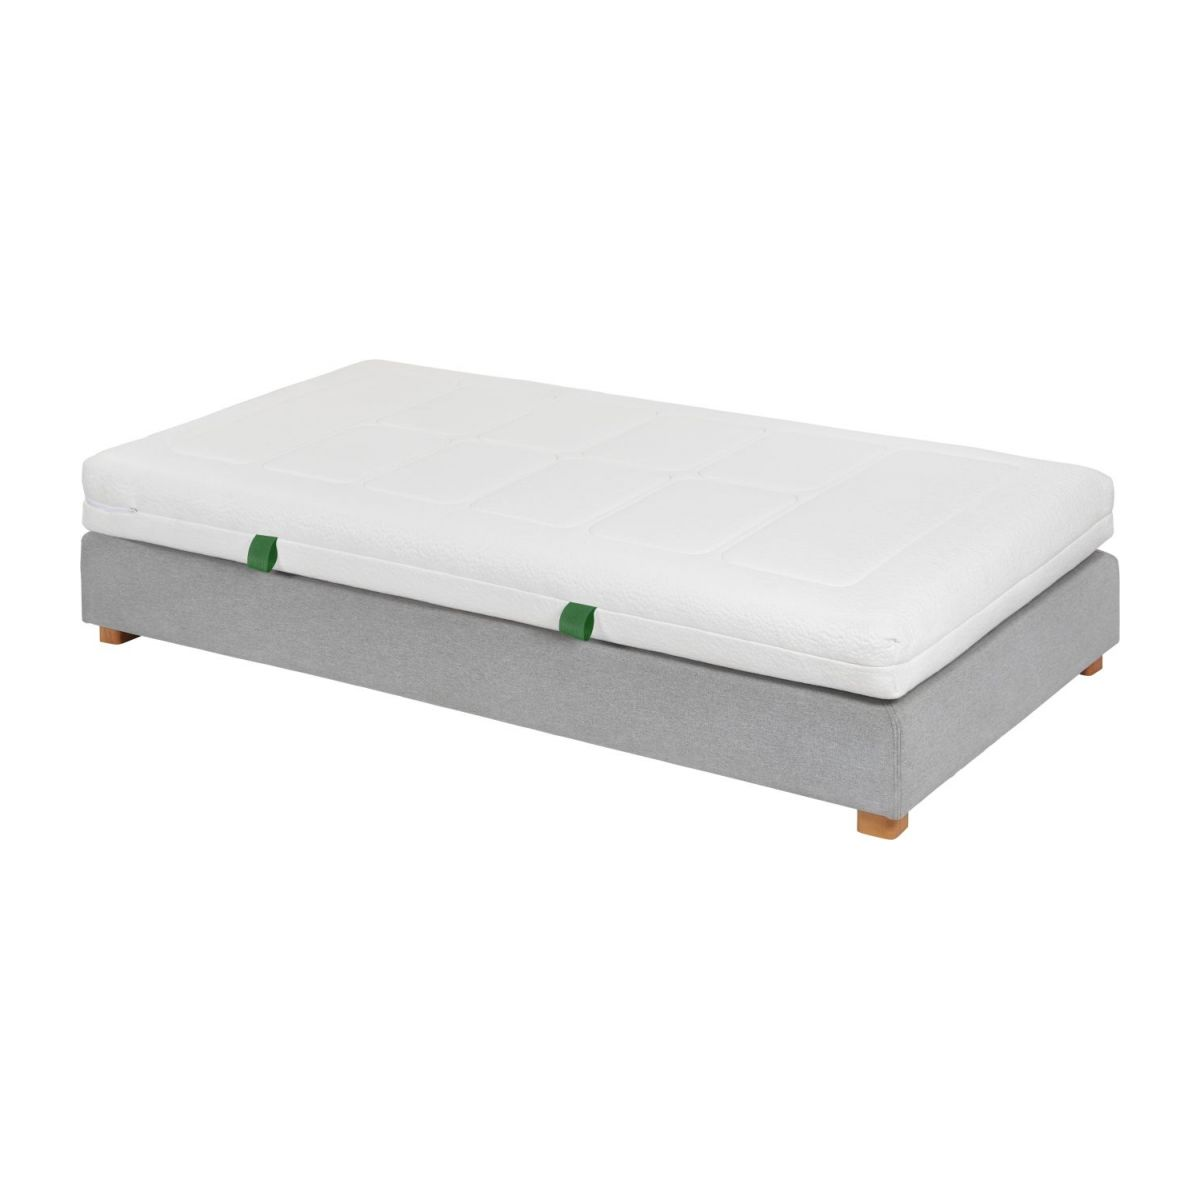 Matelas en latex, width 16 cm, 90x200cm - medium support n°5